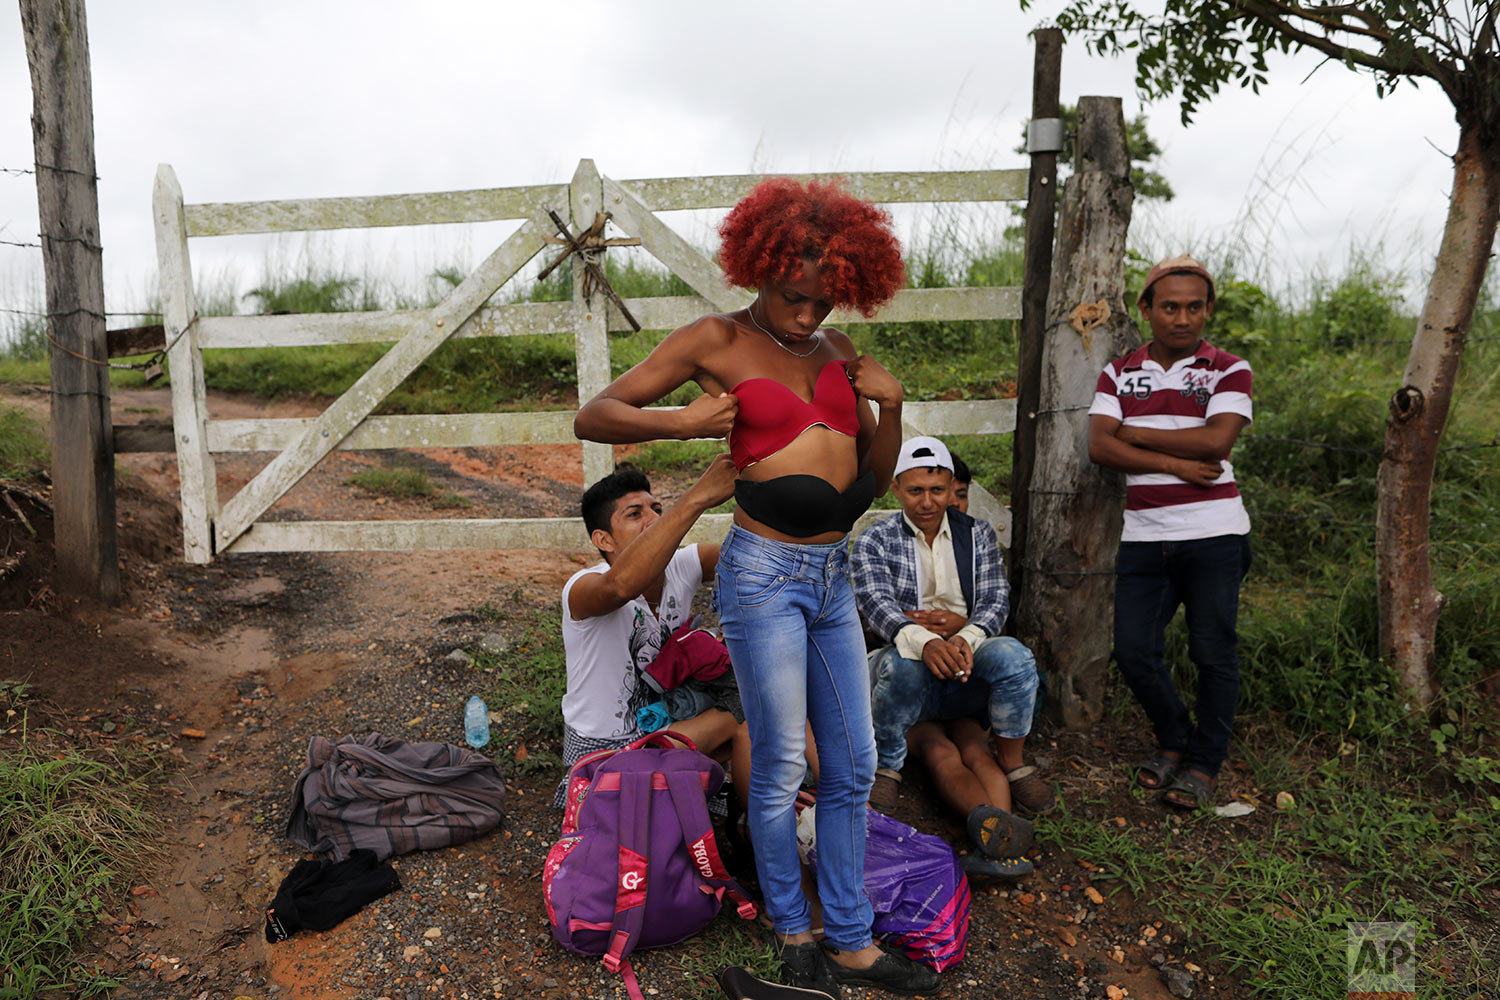 In this Nov. 3, 2018 photo, Honduran transgender Alexa Amaya, who is traveling with the migrant caravan hoping to reach the U.S. border, tries on a pushup bra she selected from a pile of donated clothing left alongside the road to Sayula, Mexico. (AP Photo/Rodrigo Abd)